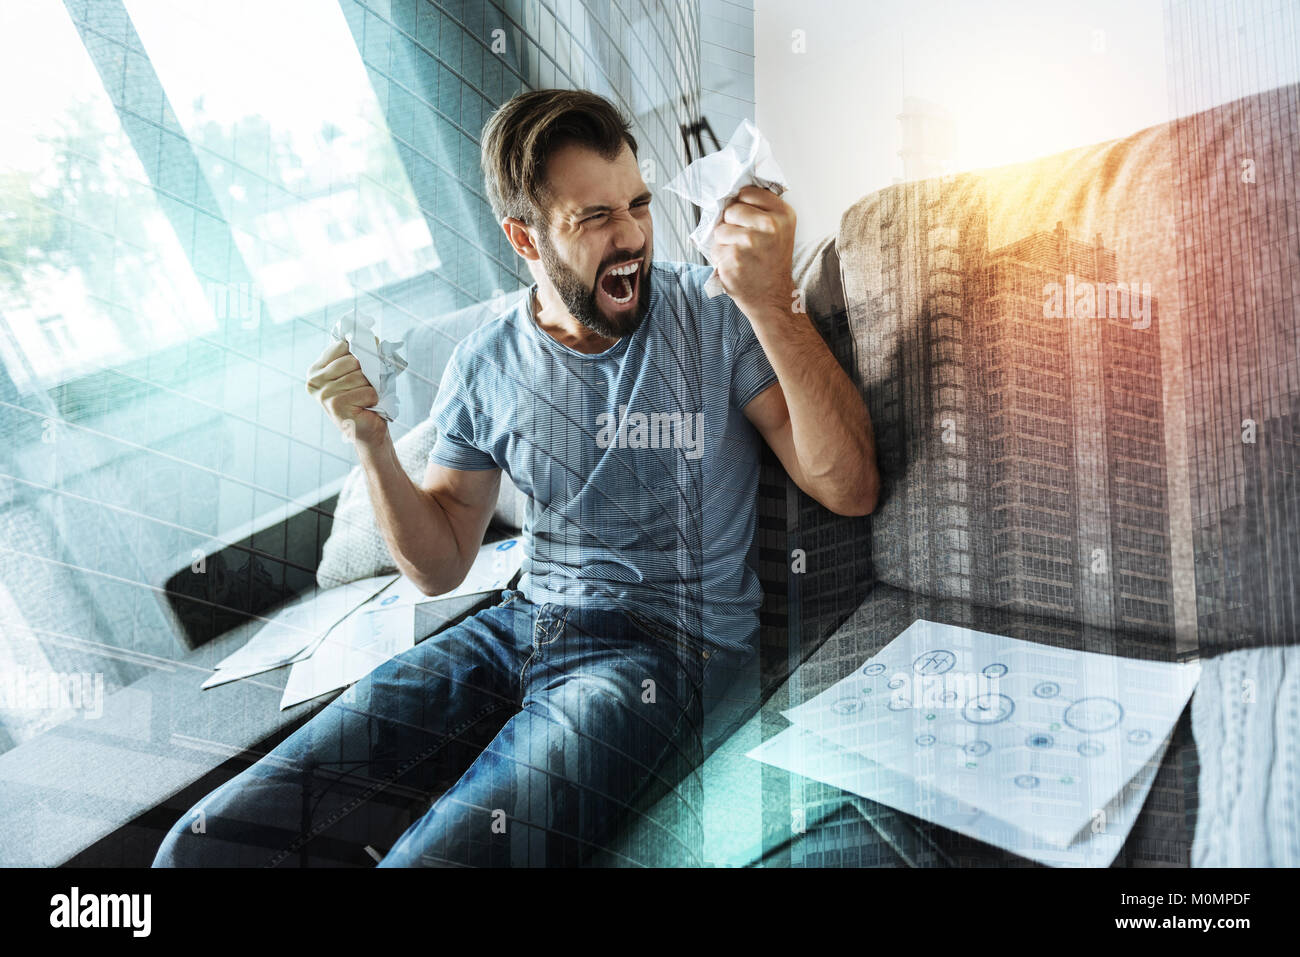 Angry frustrated man looking at paper and screaming. - Stock Image